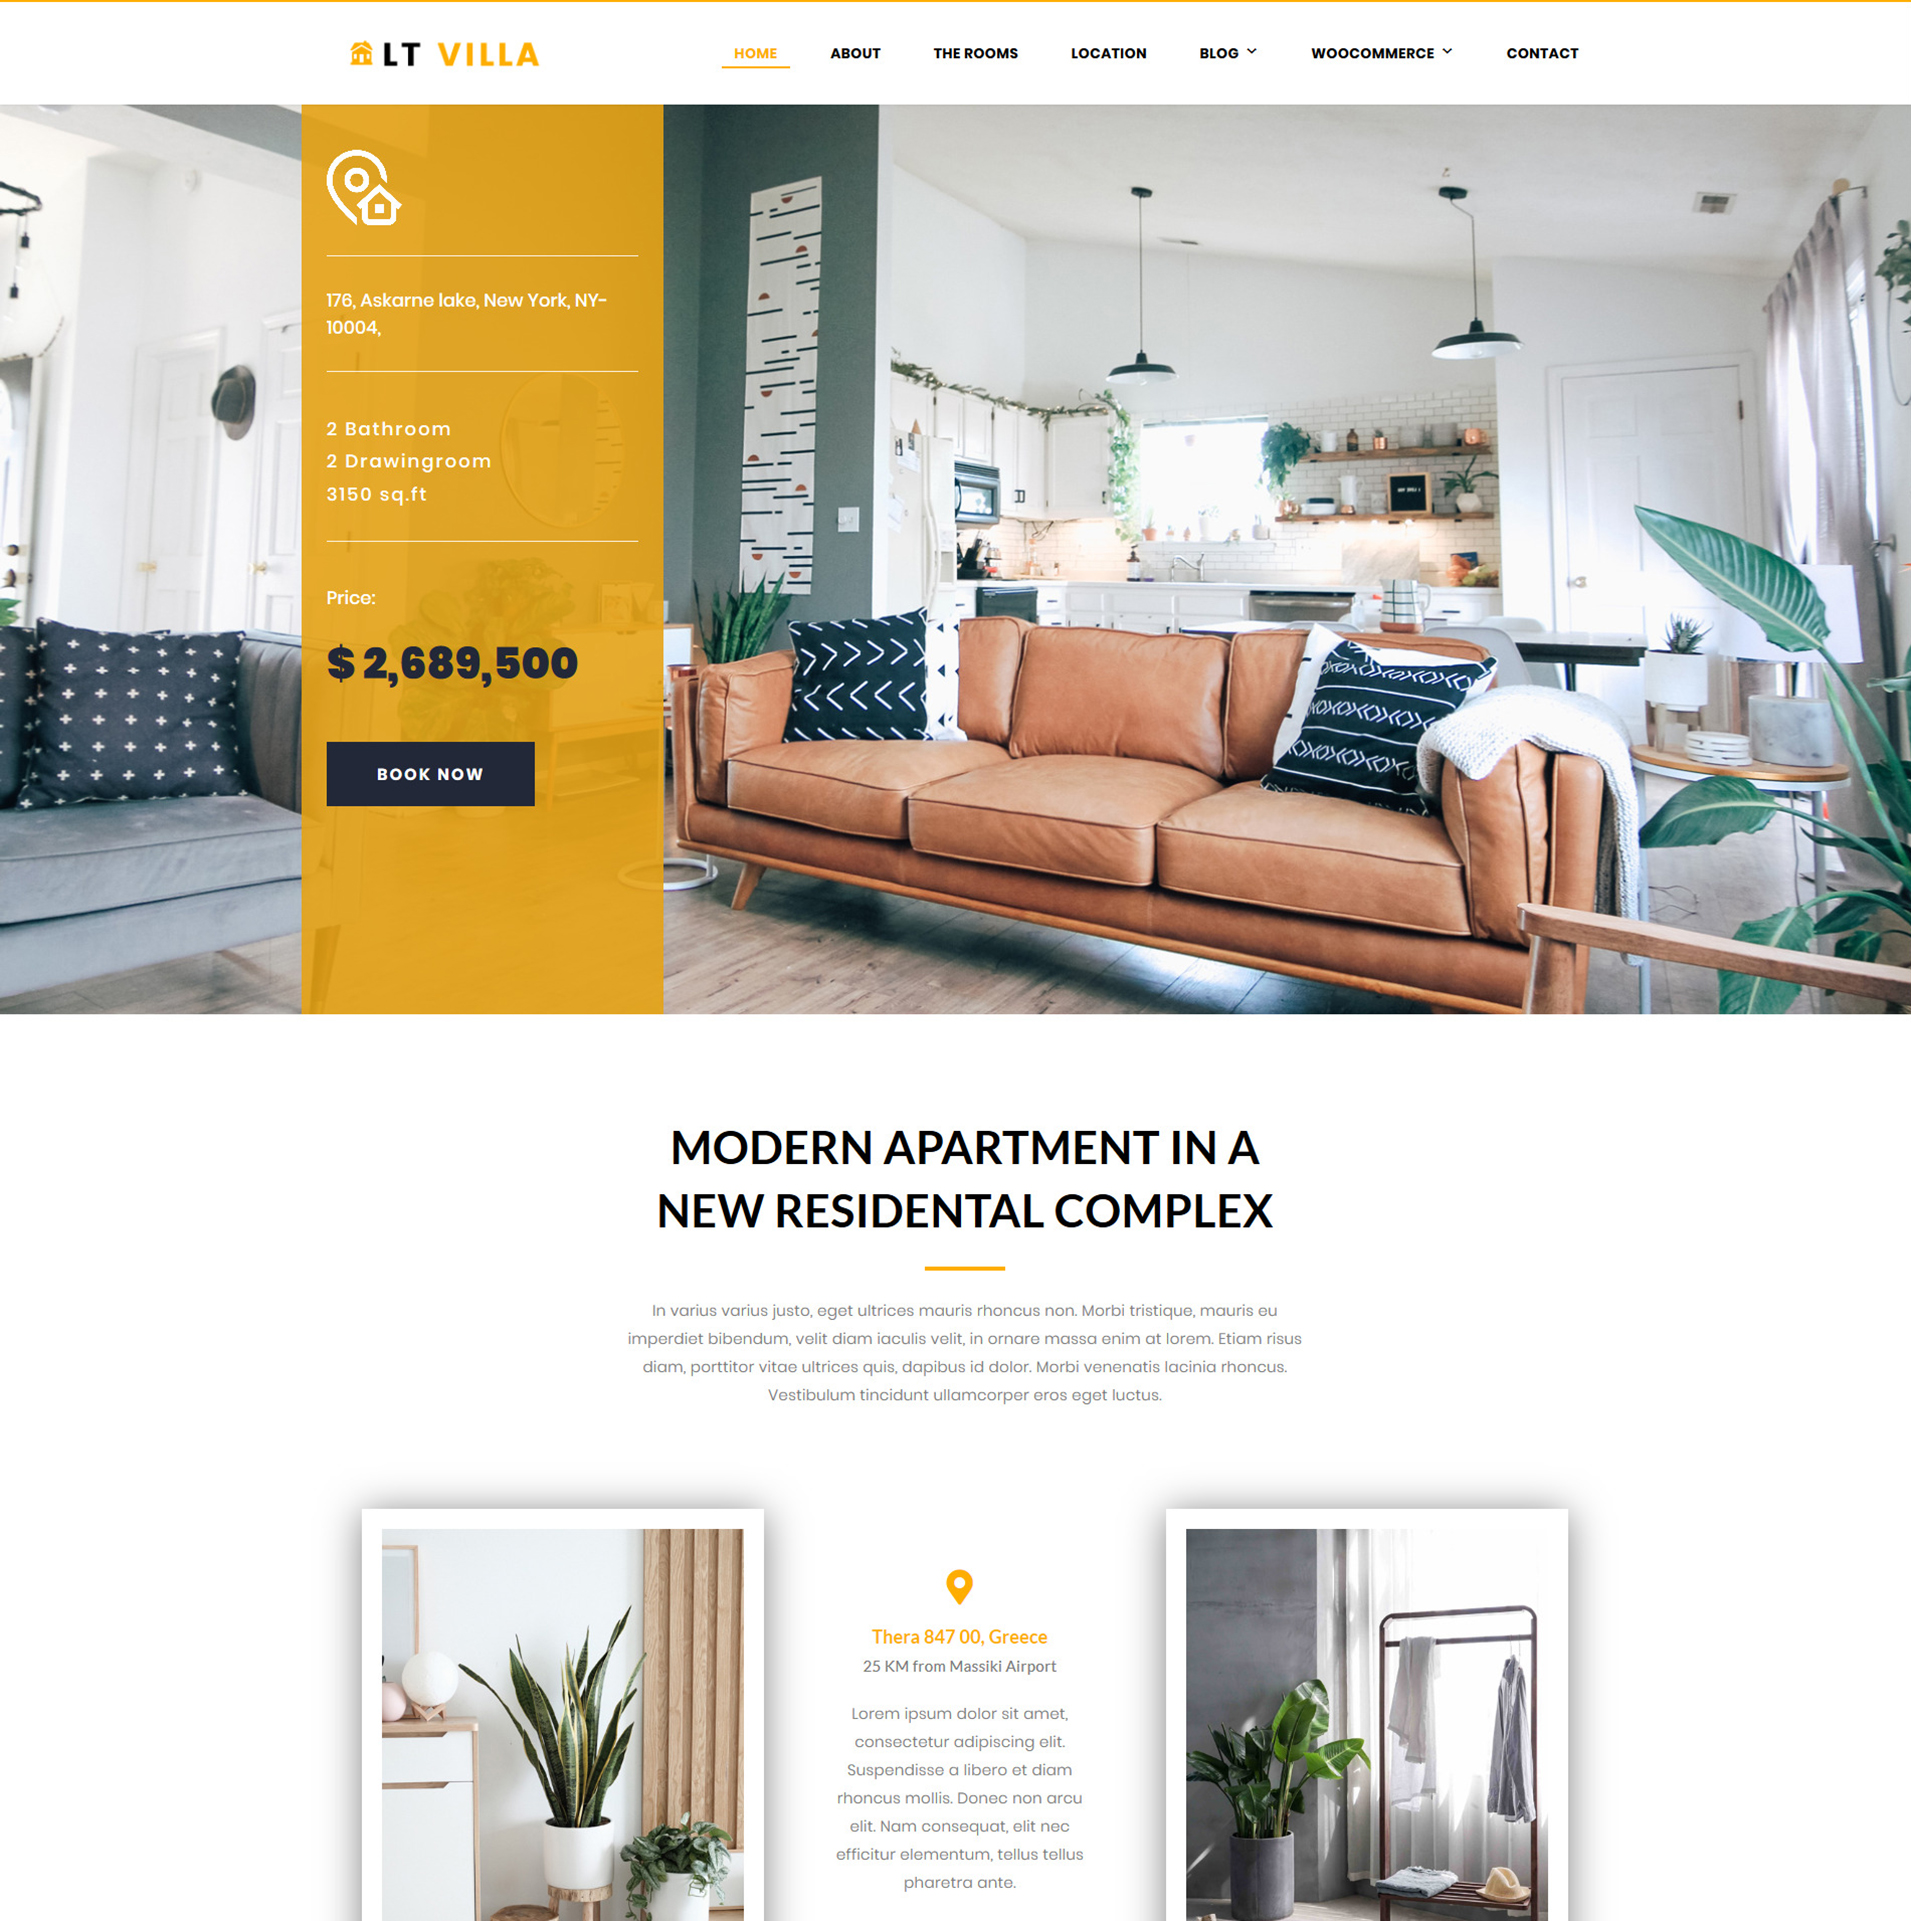 lt-villa-wordpress-theme-full